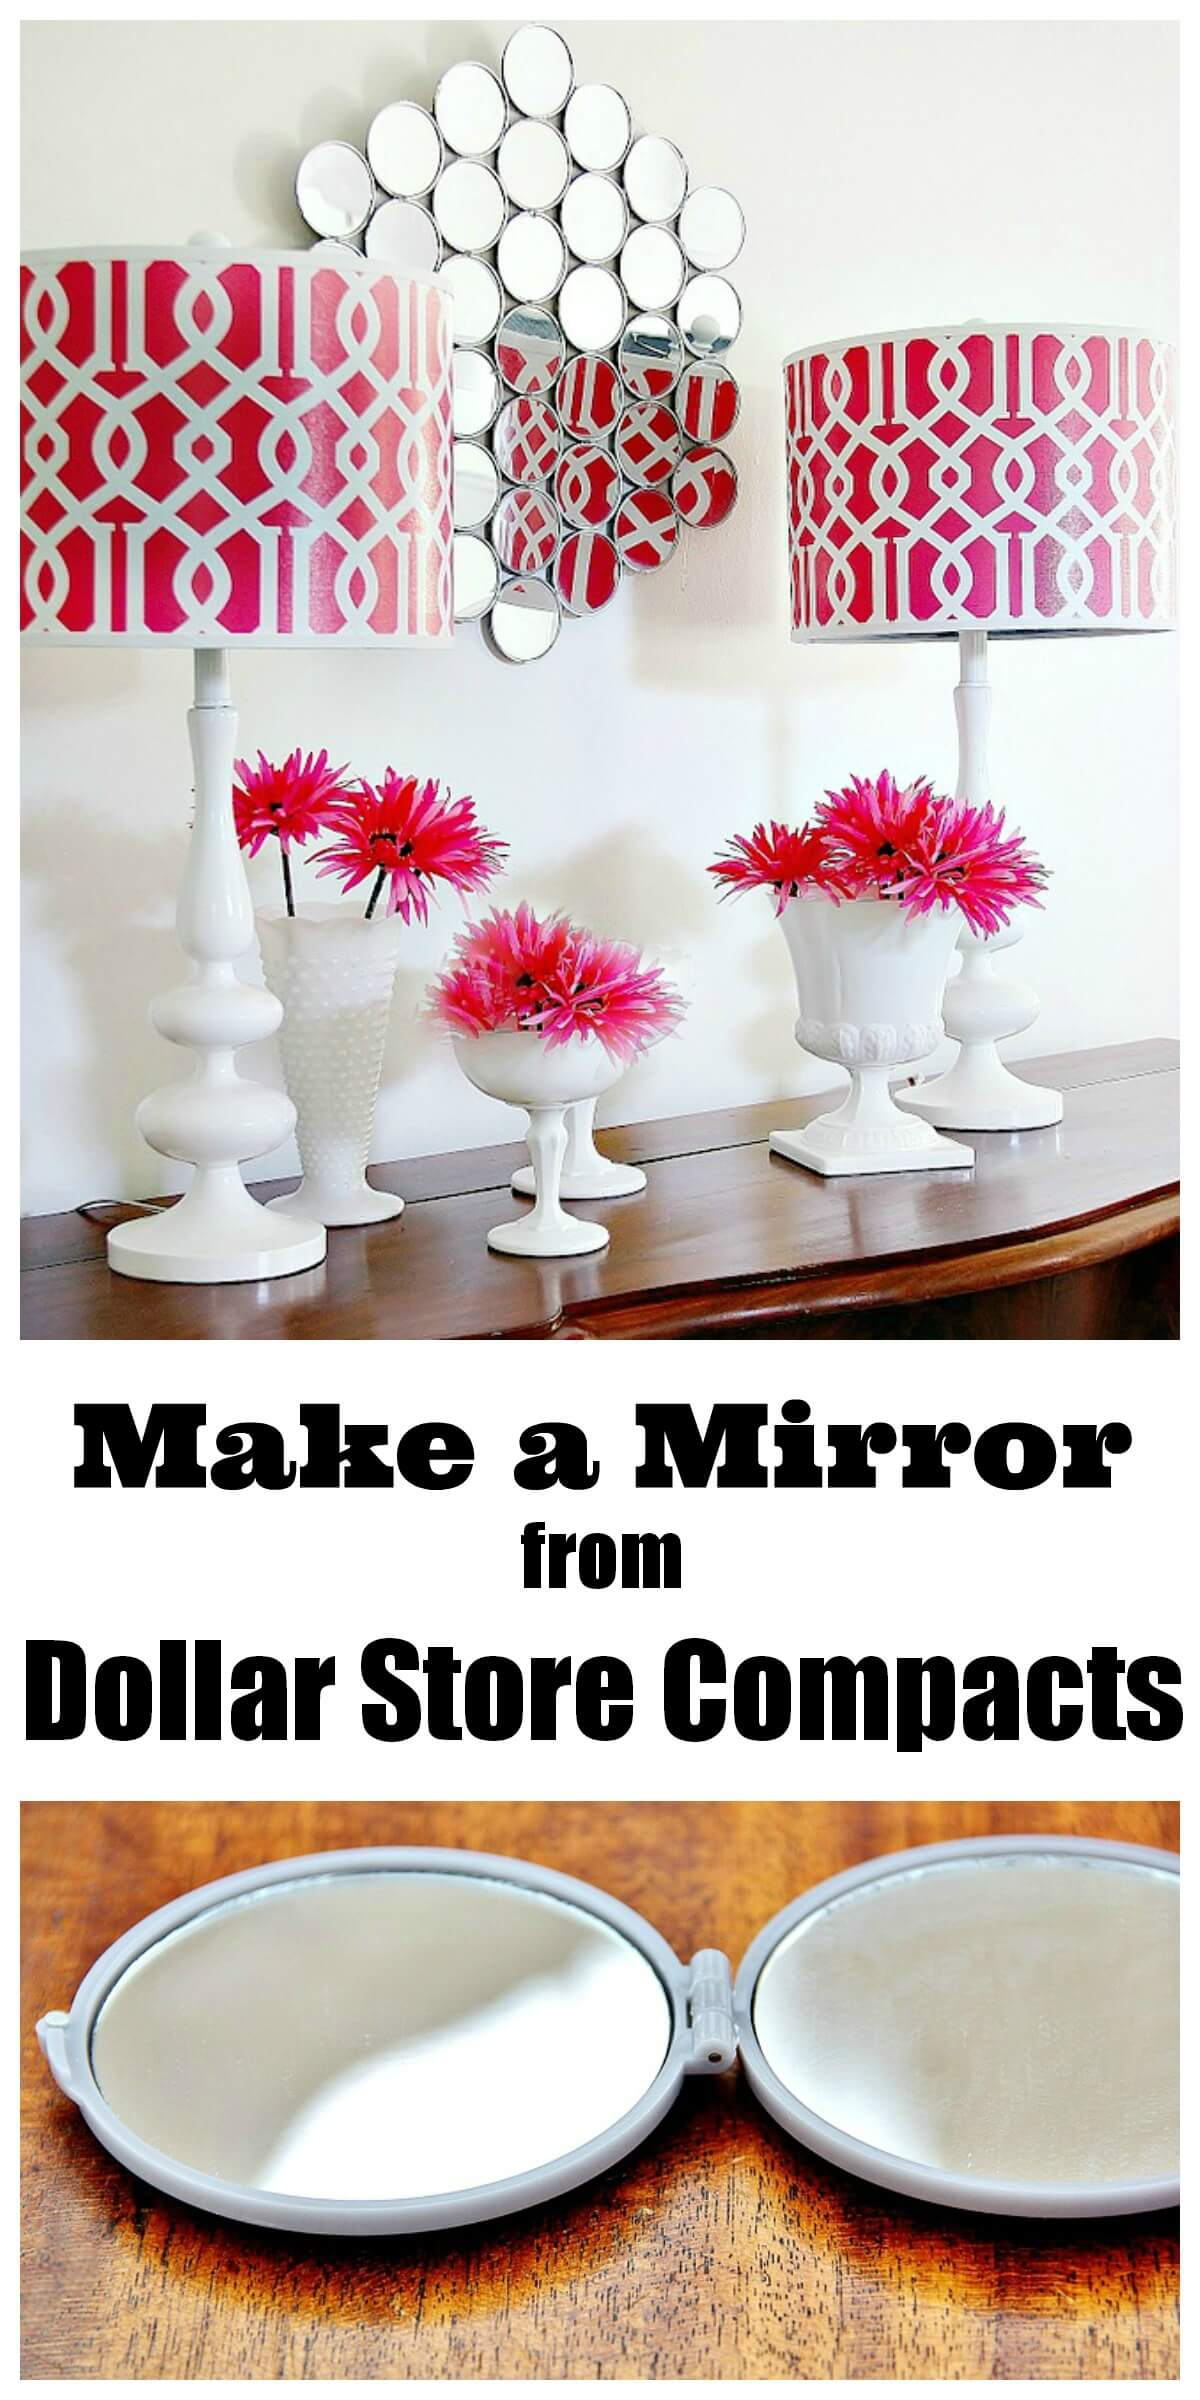 Mid-Century Modern Inspired Pocket Mirror Creation